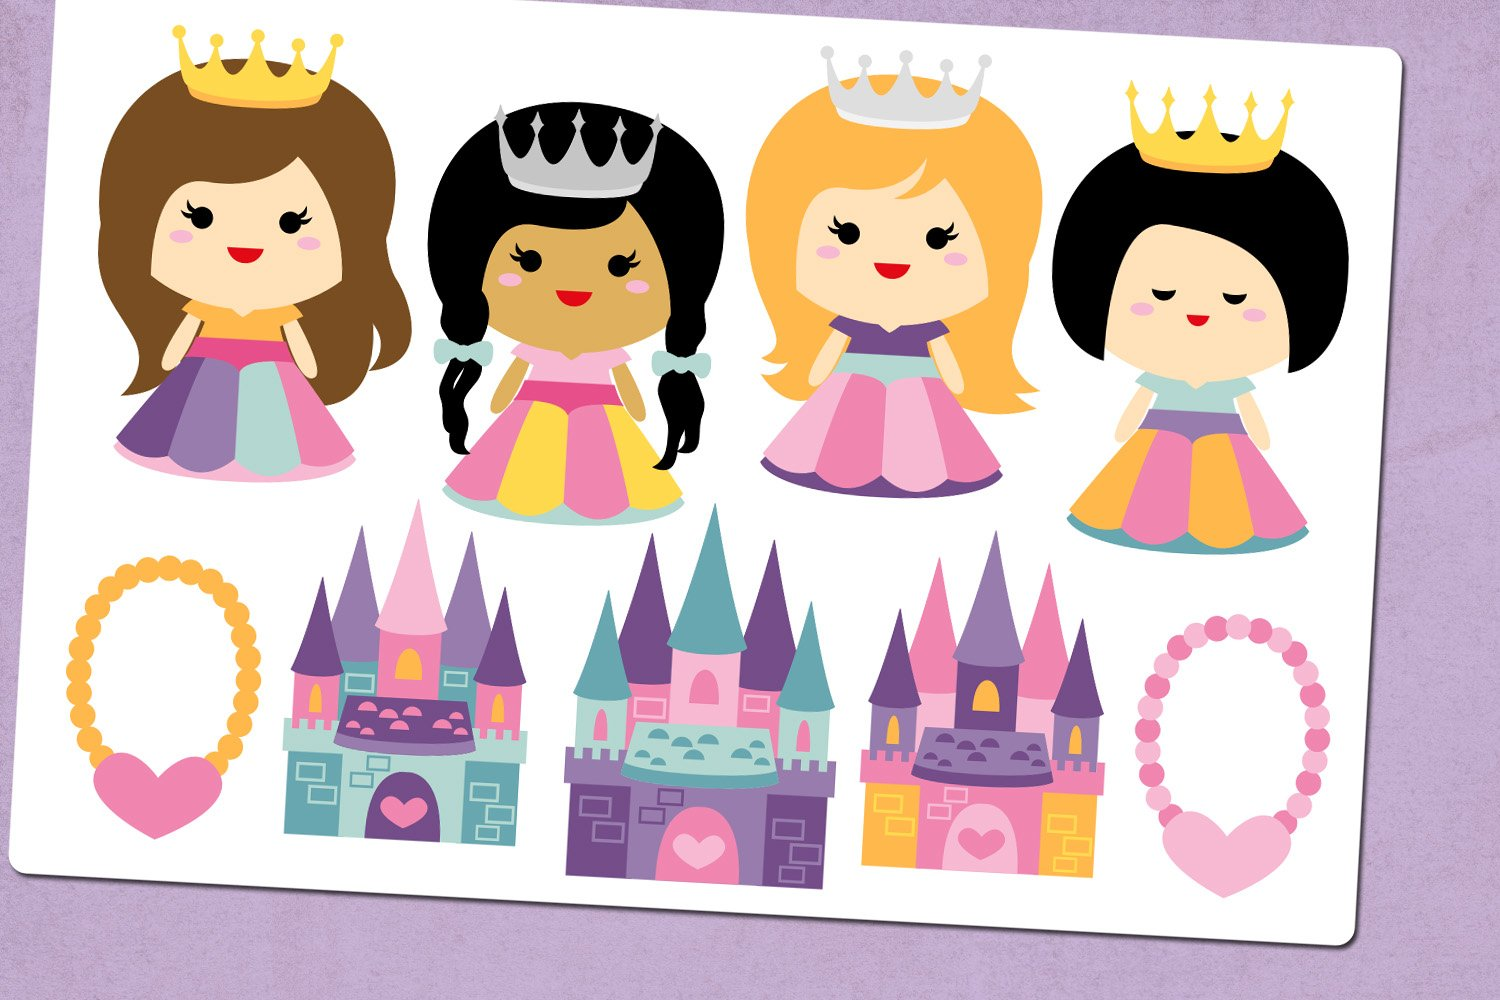 Princess and Castle Illustrations Clip Art example image 2